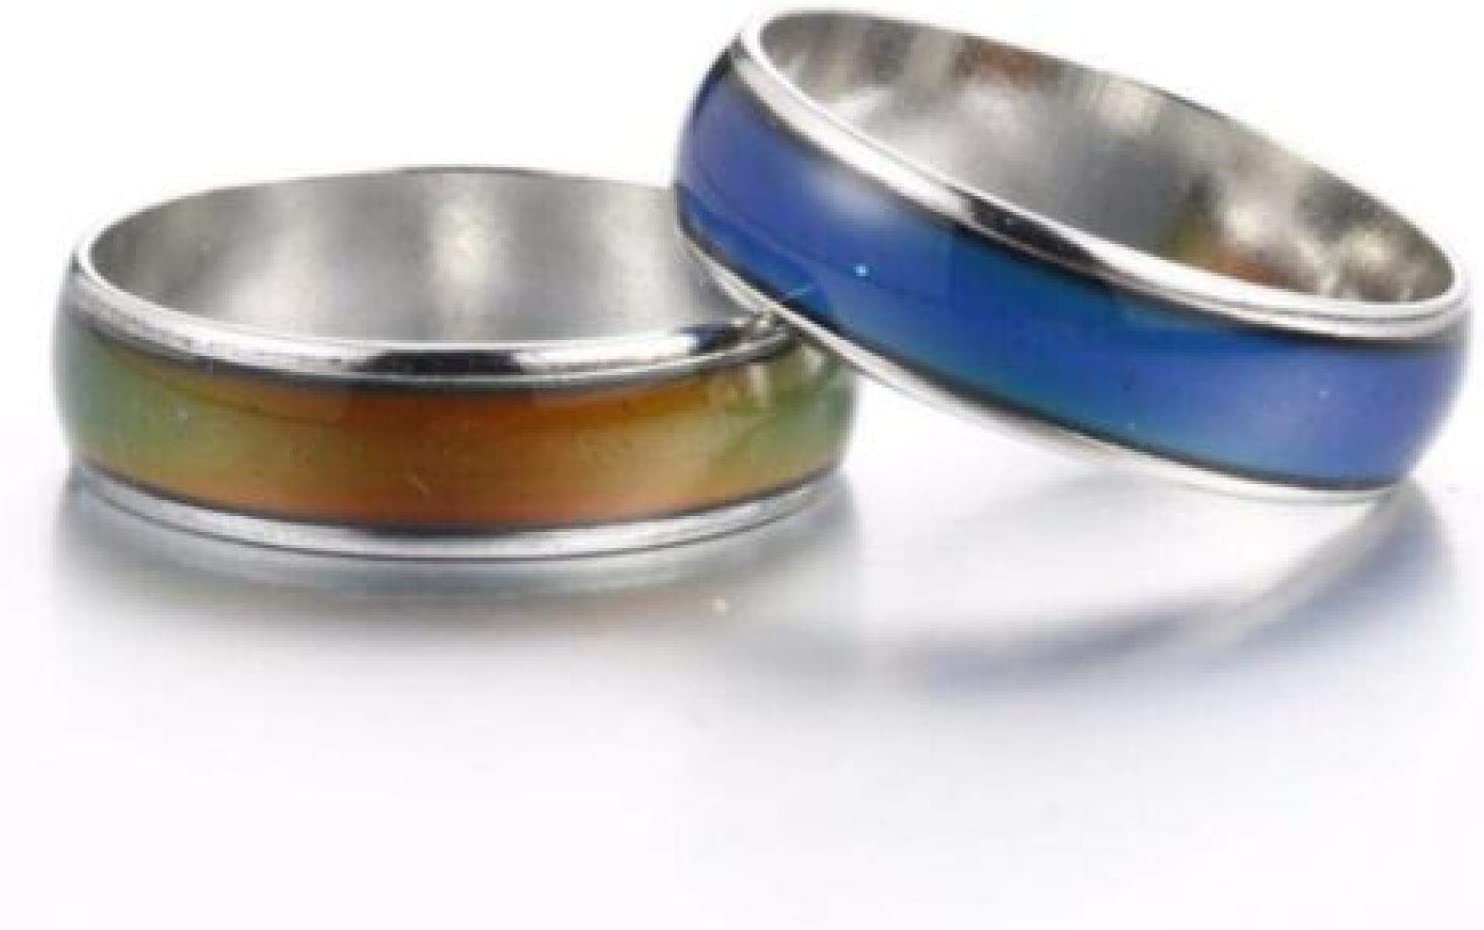 ZGHYBD Colour Changing Mood Ring Jewellery Temperature Stainless Steel Fashion,Stainless Steel Magic Mood Ring Temperature Changing Color Emotion Feeling Rings for Women Men Couple Ring Jewelry 20mm